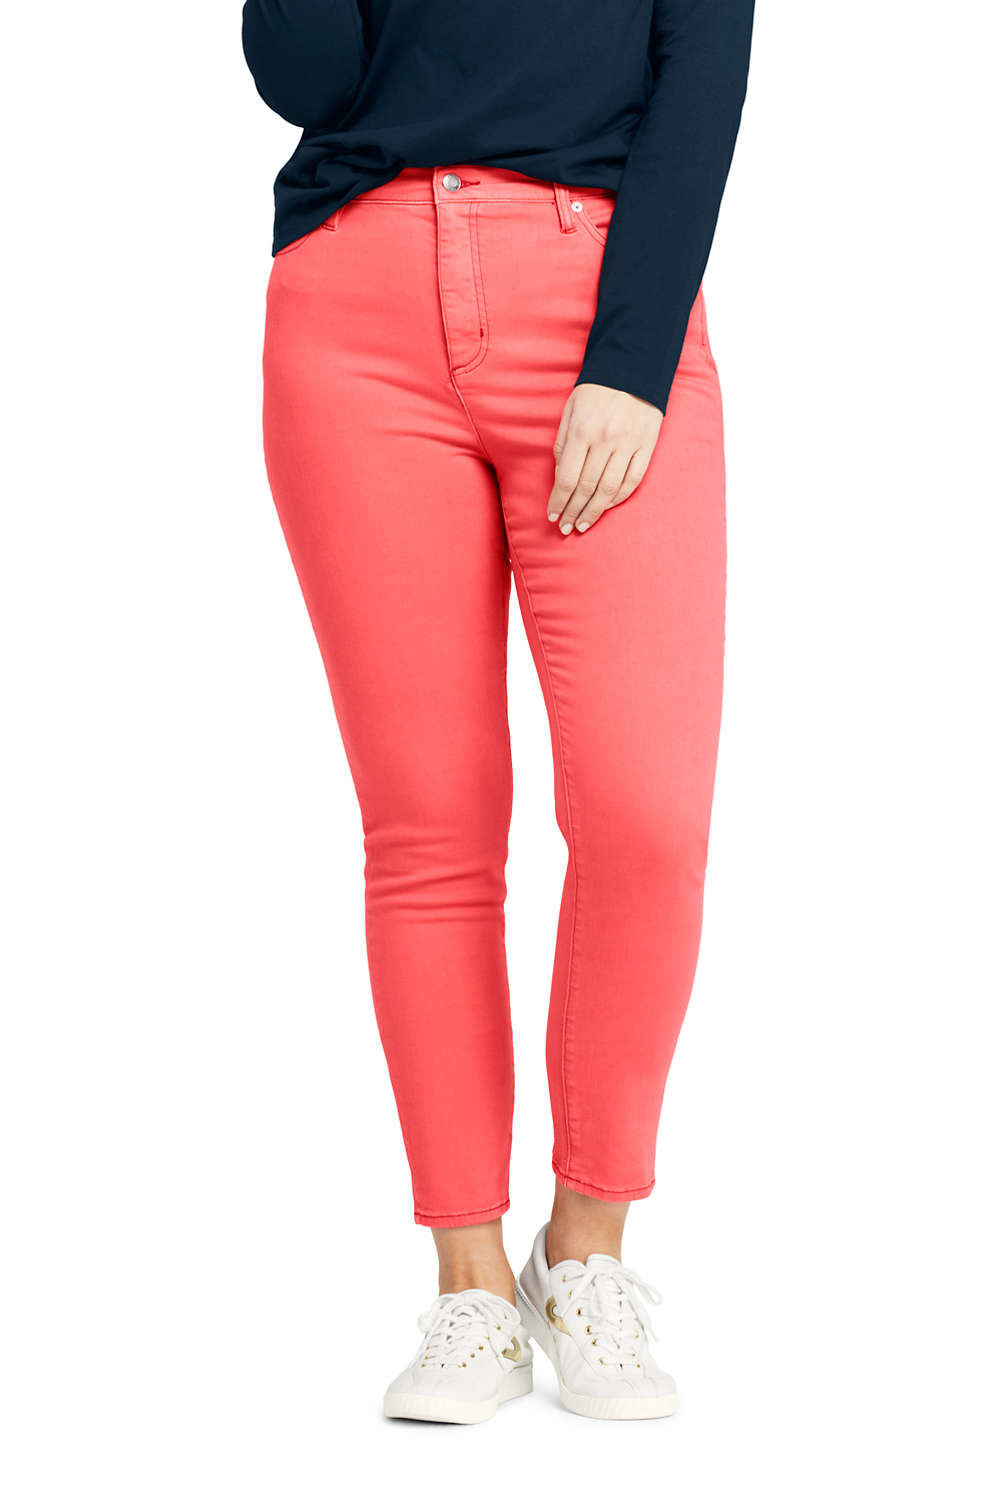 e023cad408f Women s Plus Size High Rise Slim Leg Ankle Jeans from Lands  End